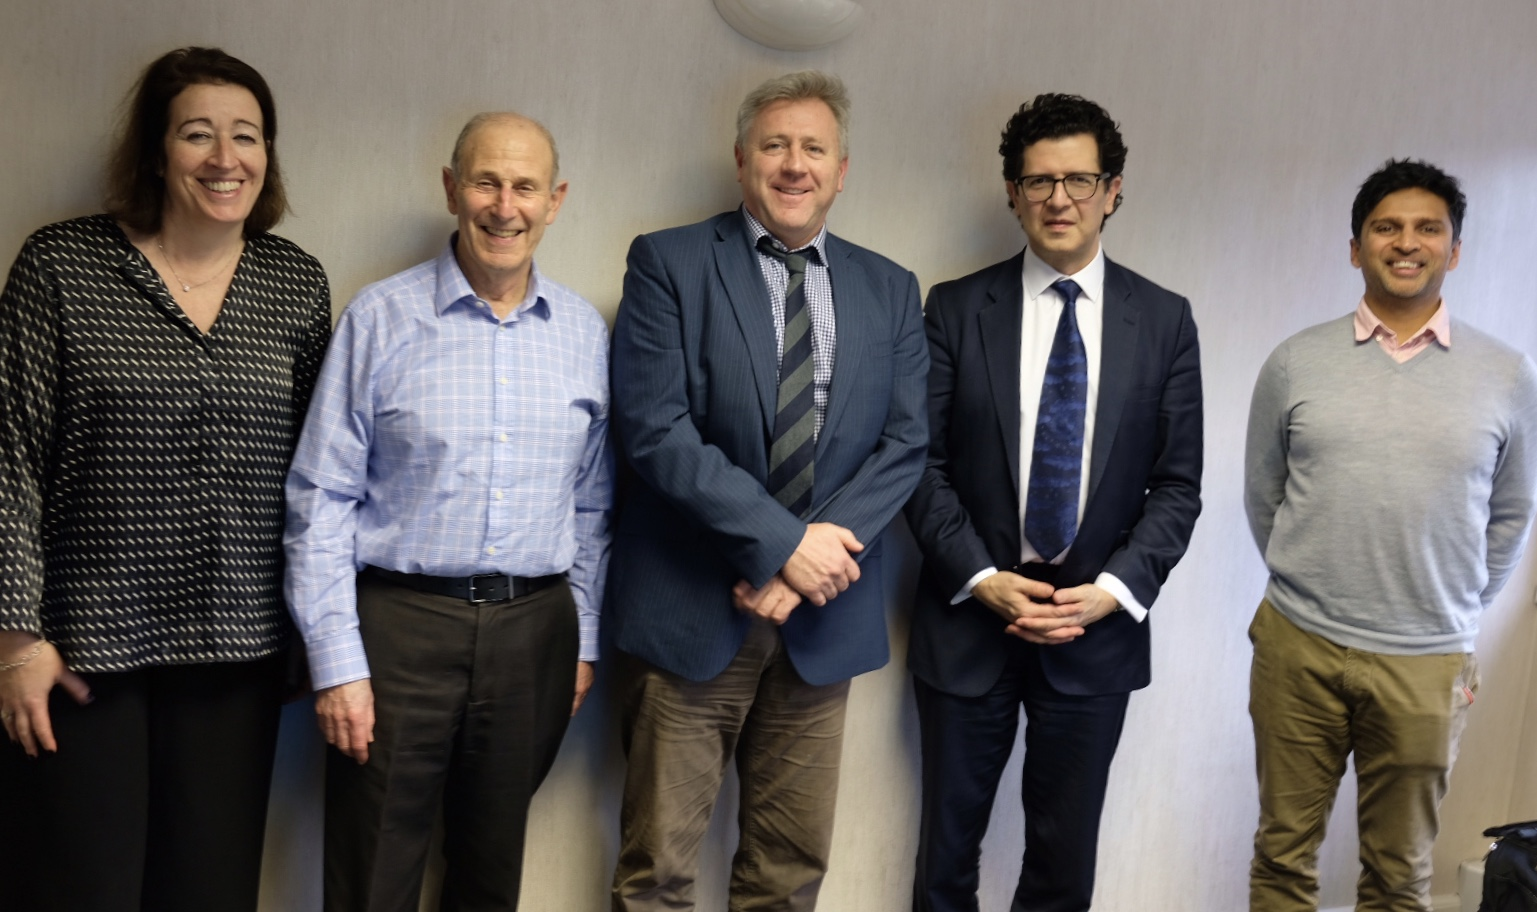 The Rosetrees Trust and the University of Oxford are long-standing supporters of research at the RCS. From left to right: Ann Berger from Rosetrees Trust, Richard Ross from Rosetrees Trust, Professor David Beard, Professor Michael Douek and Vineeth Rajkumar from Rosetrees Trust